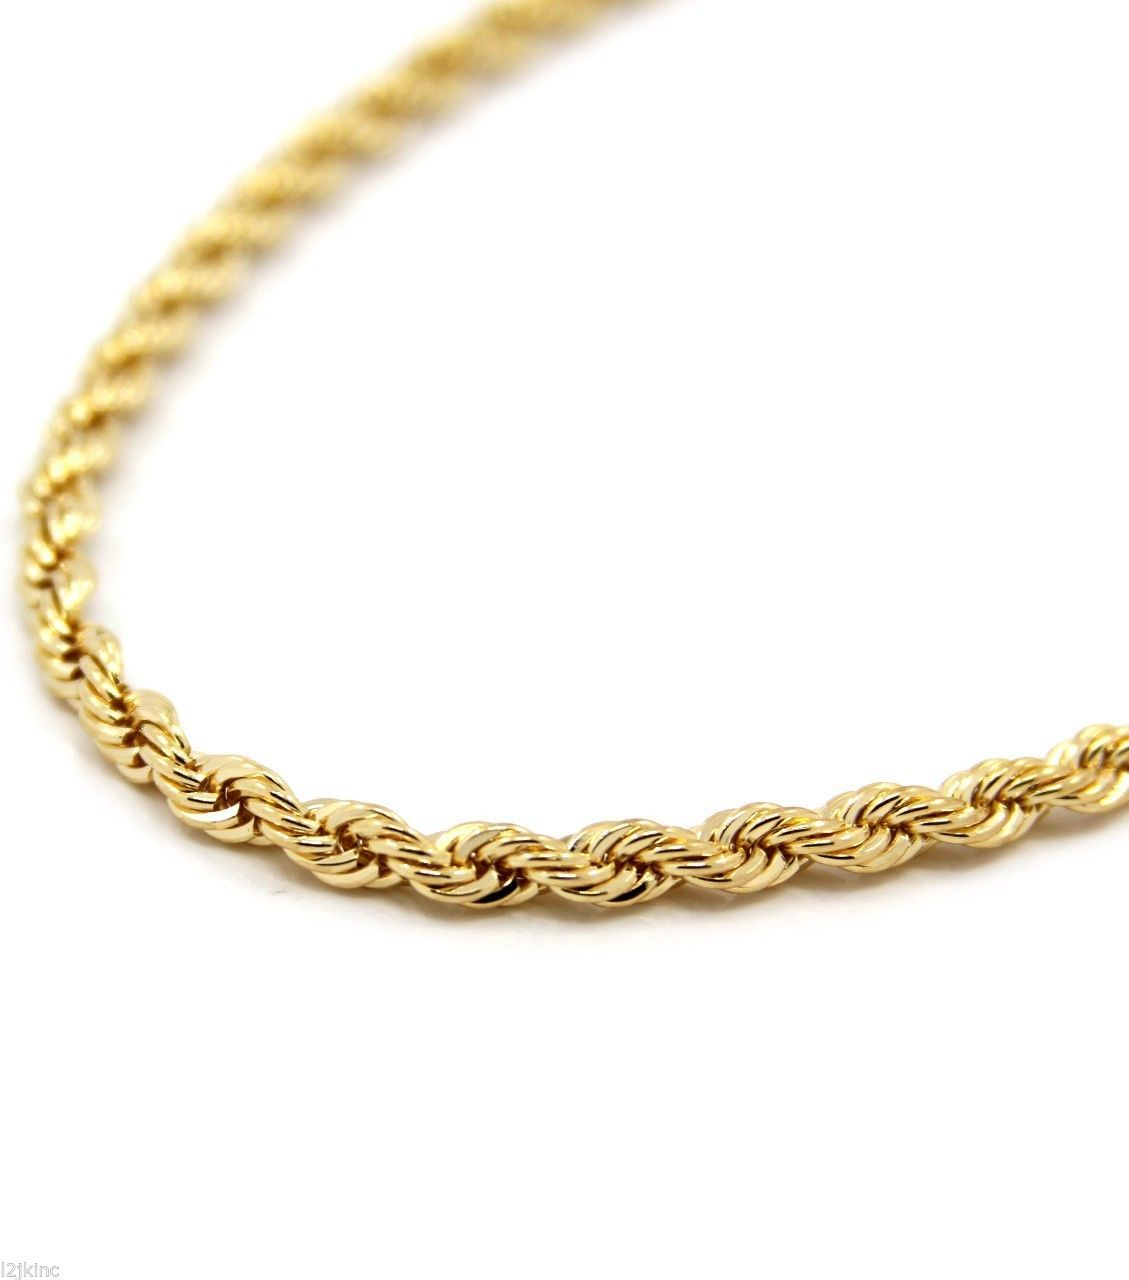 Mens 14k Yellow Gold Plated 5mm Rope Chain Necklace 24 034 Ebay Gold Chains For Men Gold Rope Chains Gold Chains